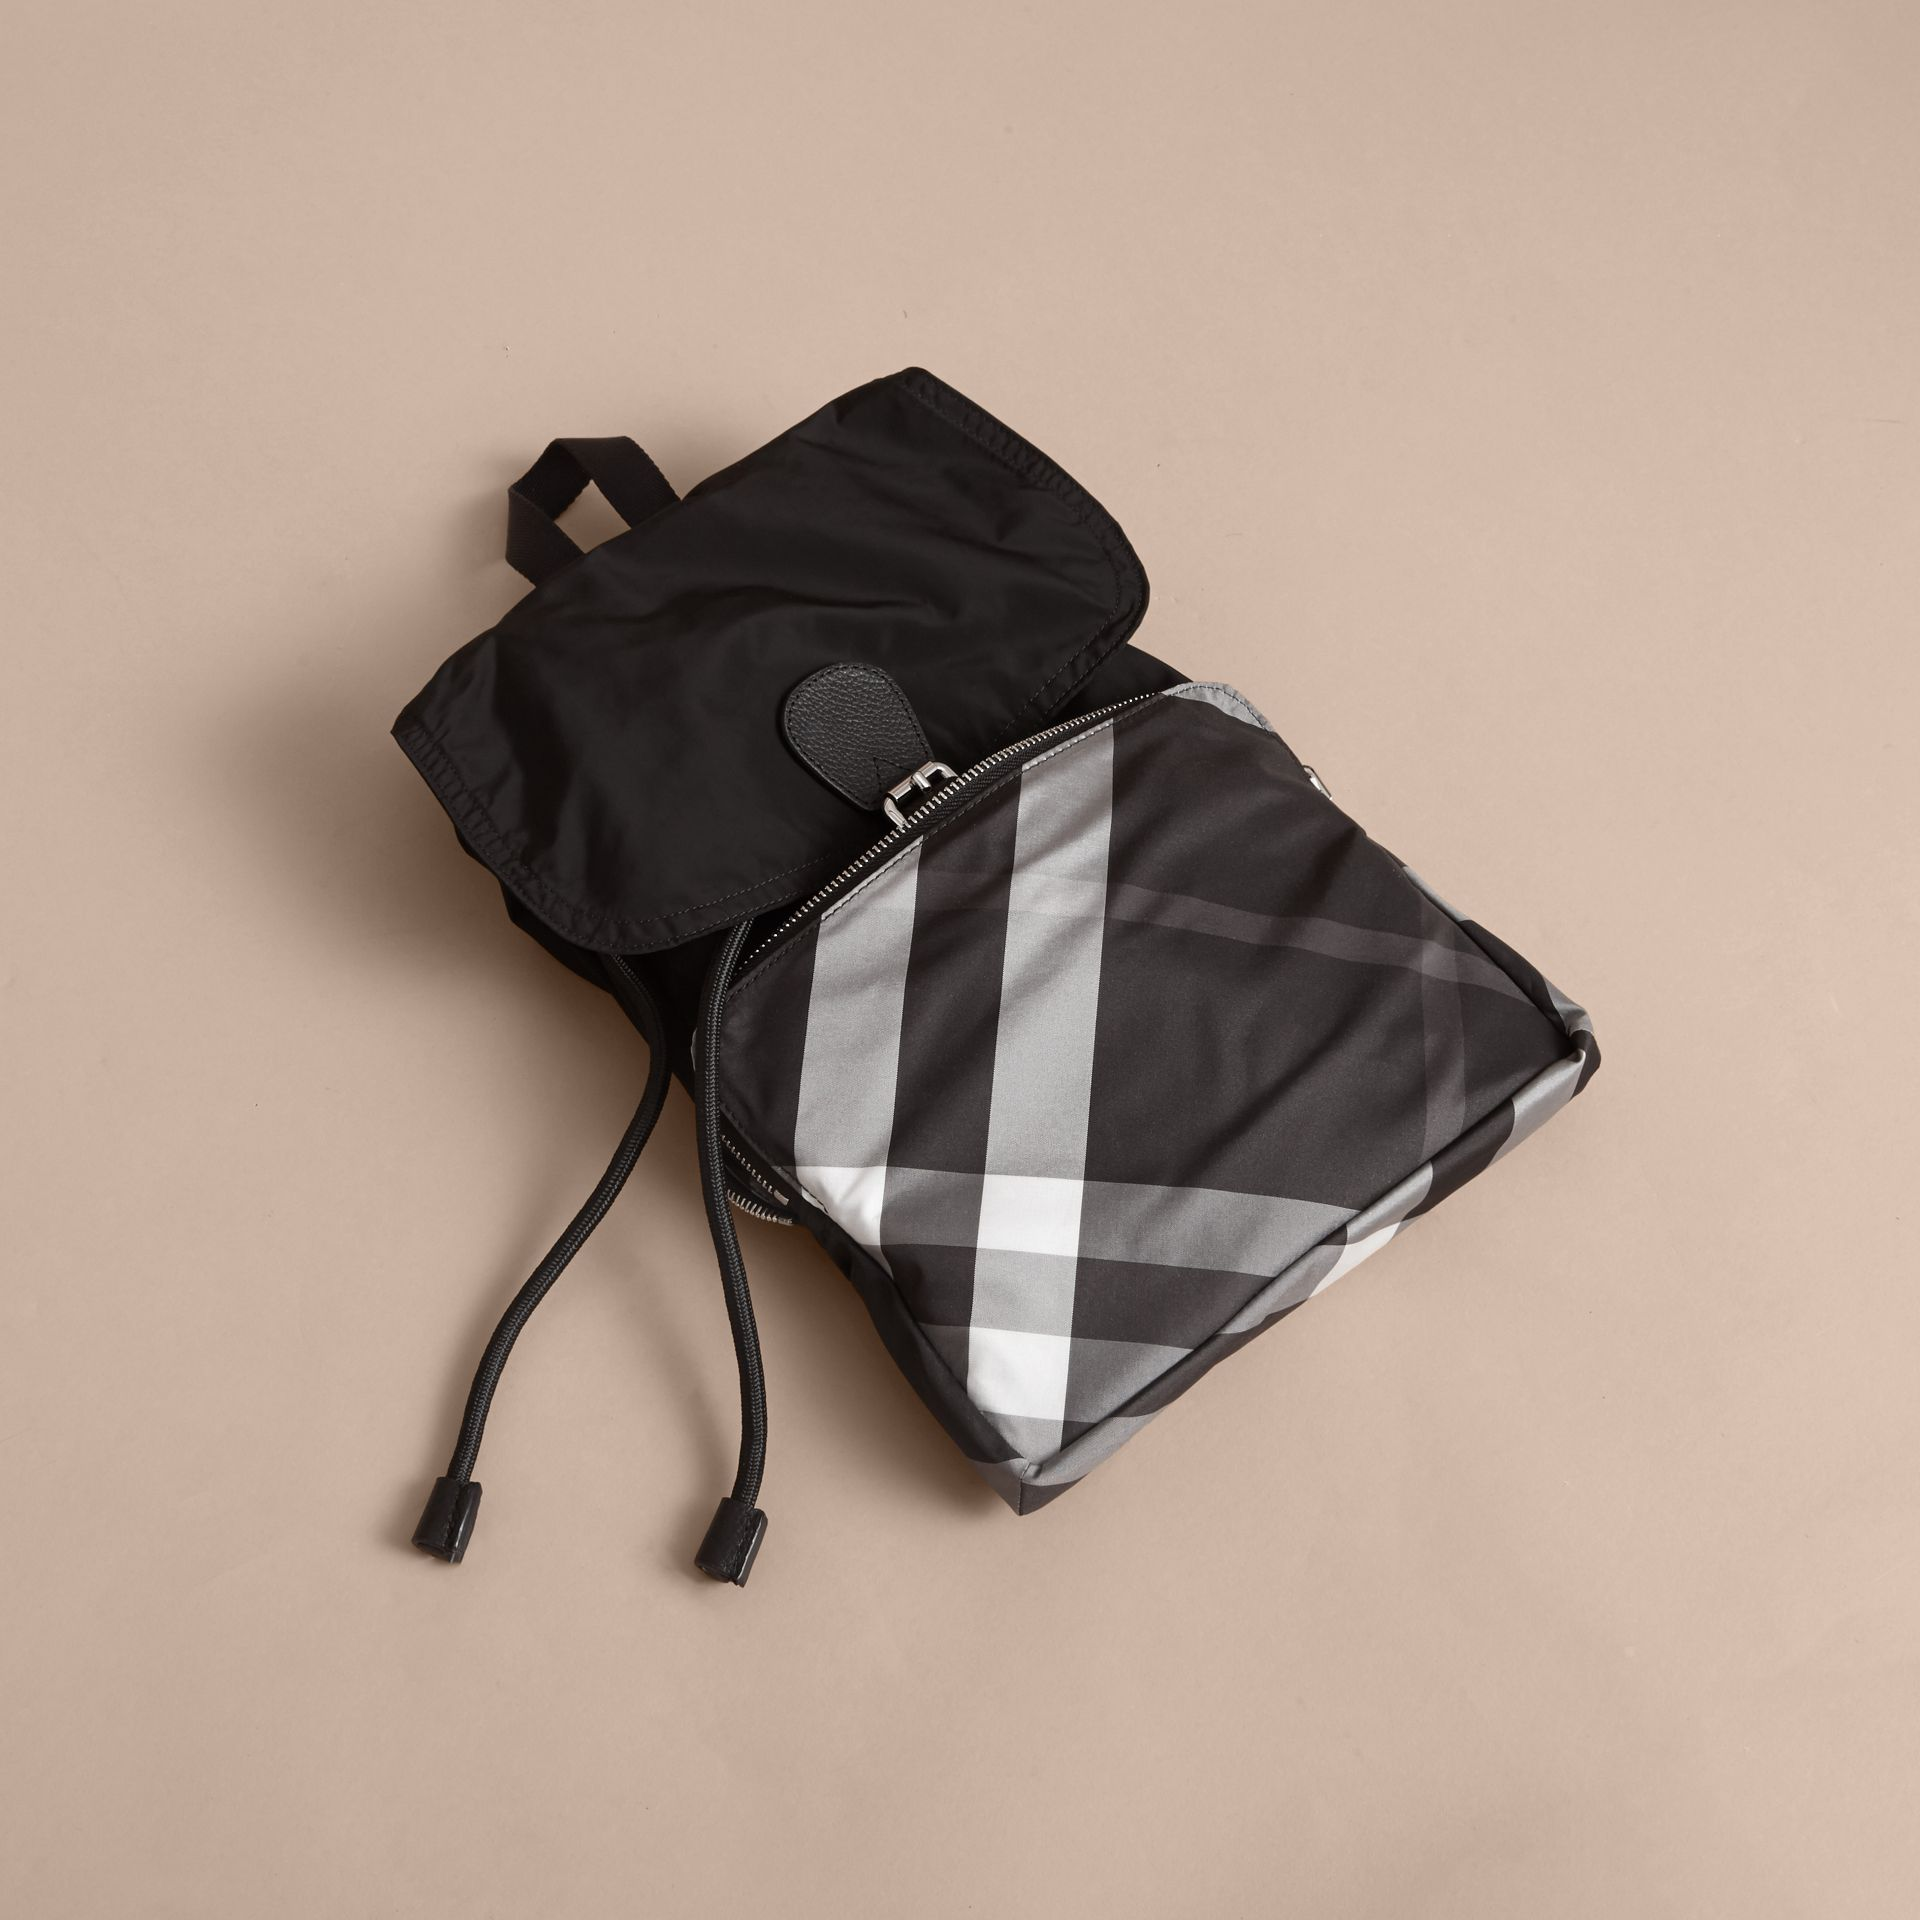 Check Detail Technical Packaway Rucksack Black - gallery image 6